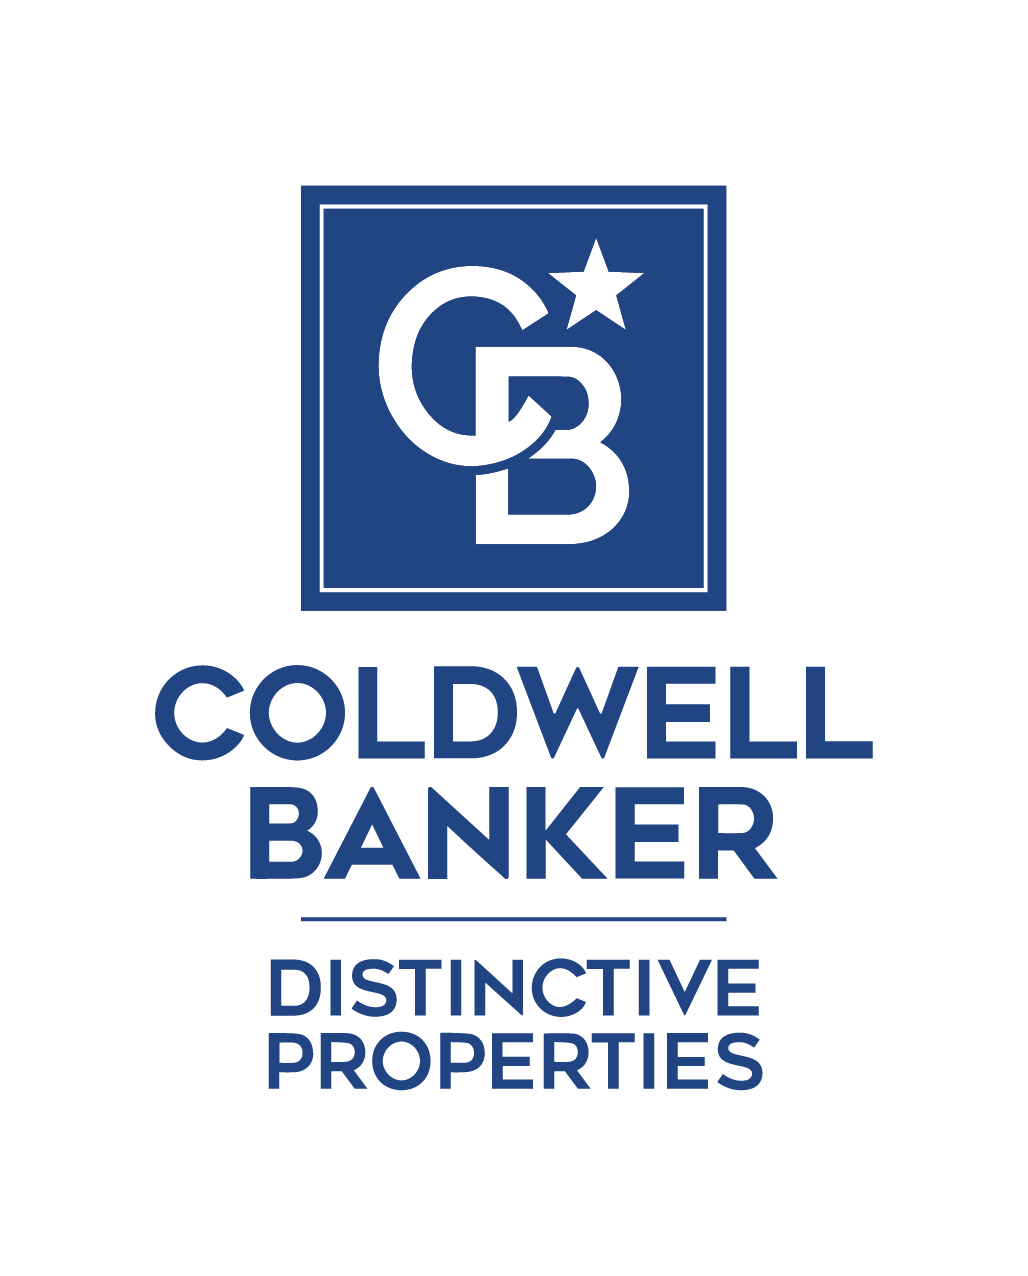 Linda Virgin - Coldwell Banker Distinctive Properties